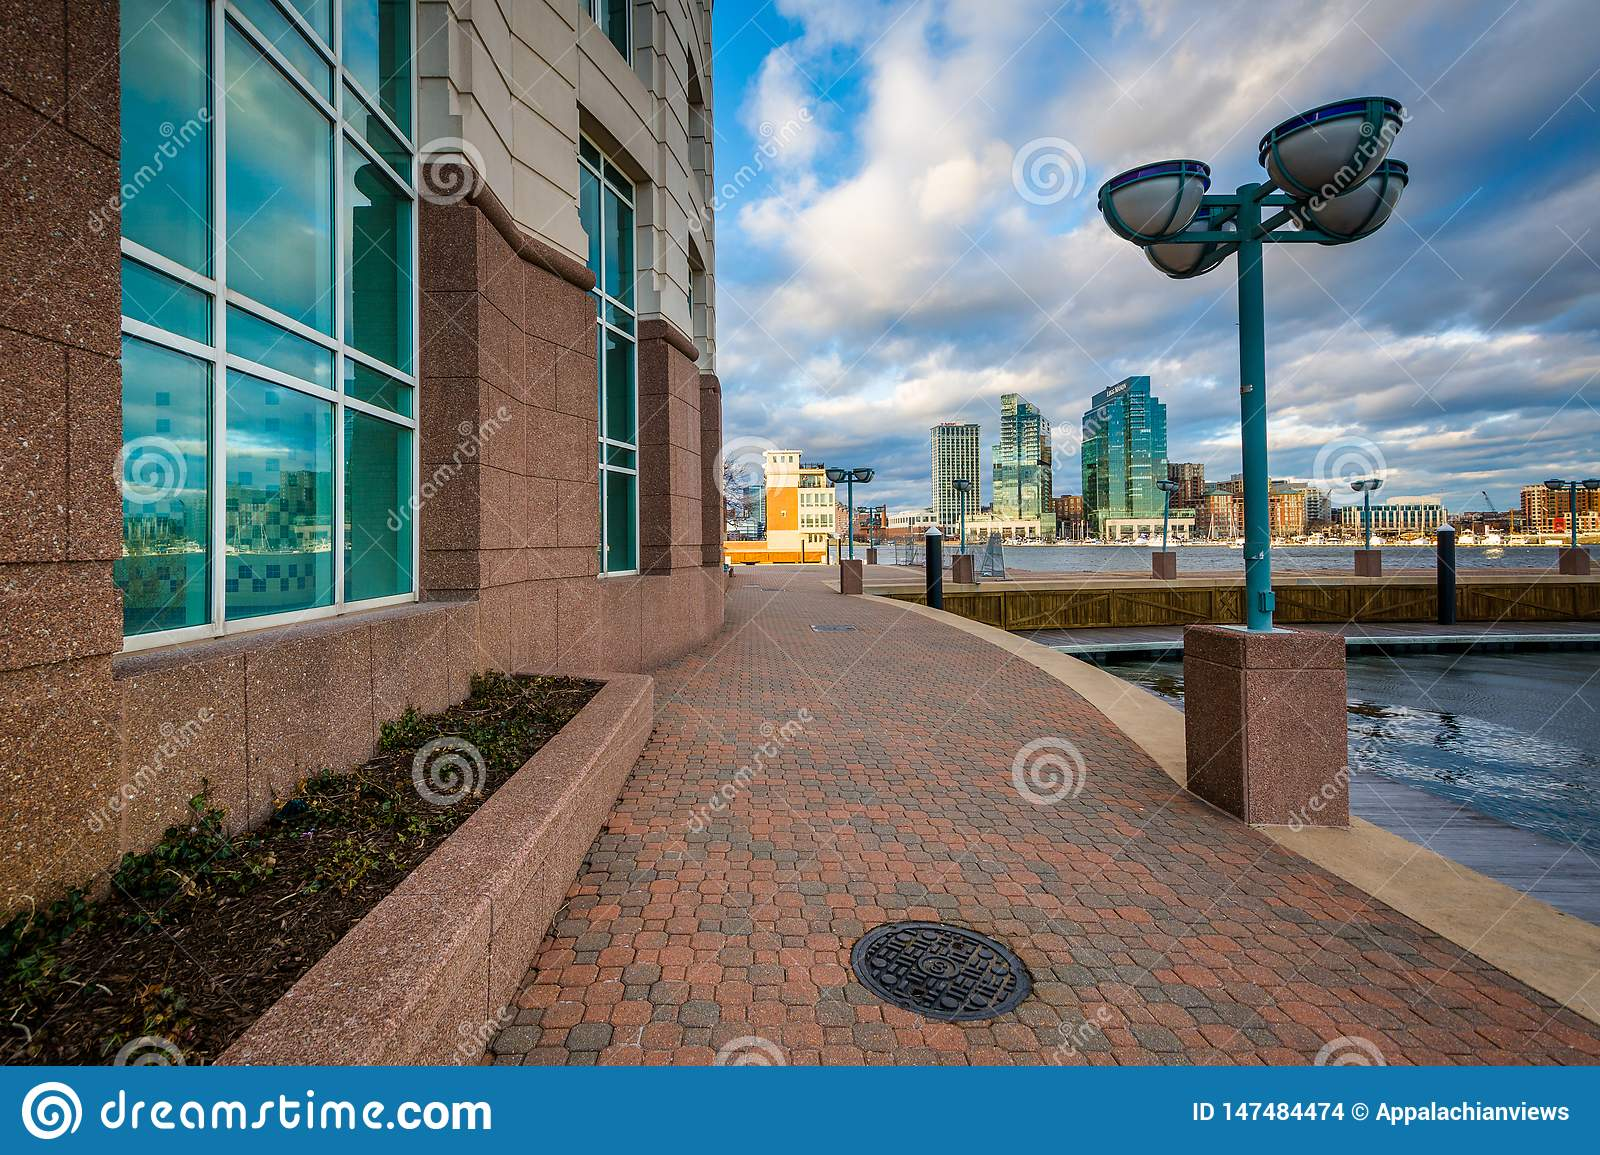 Walkway and the Harborview Tower, in Baltimore, Maryland